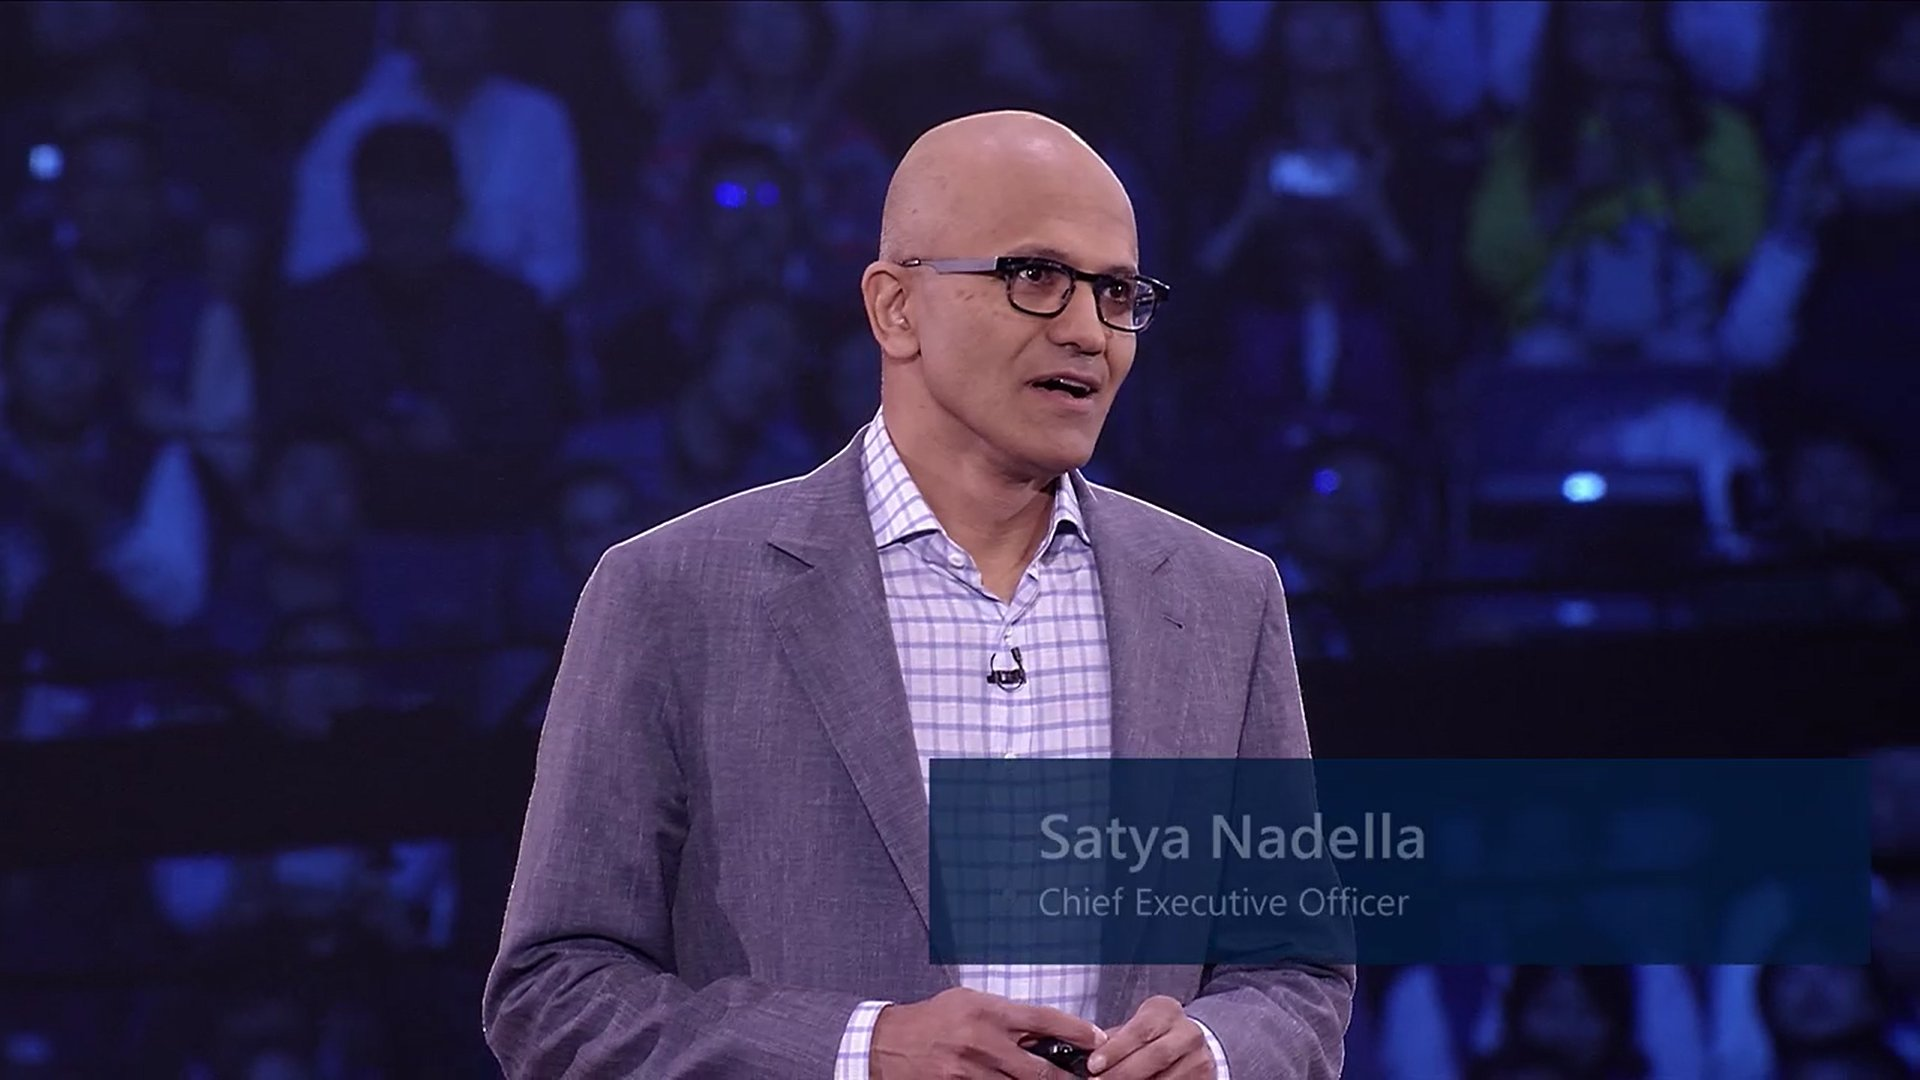 Now it gets interesting...  #MSInspire... setting the tone for everything that happens throughout the year.. https://t.co/nYPAHLuk2g